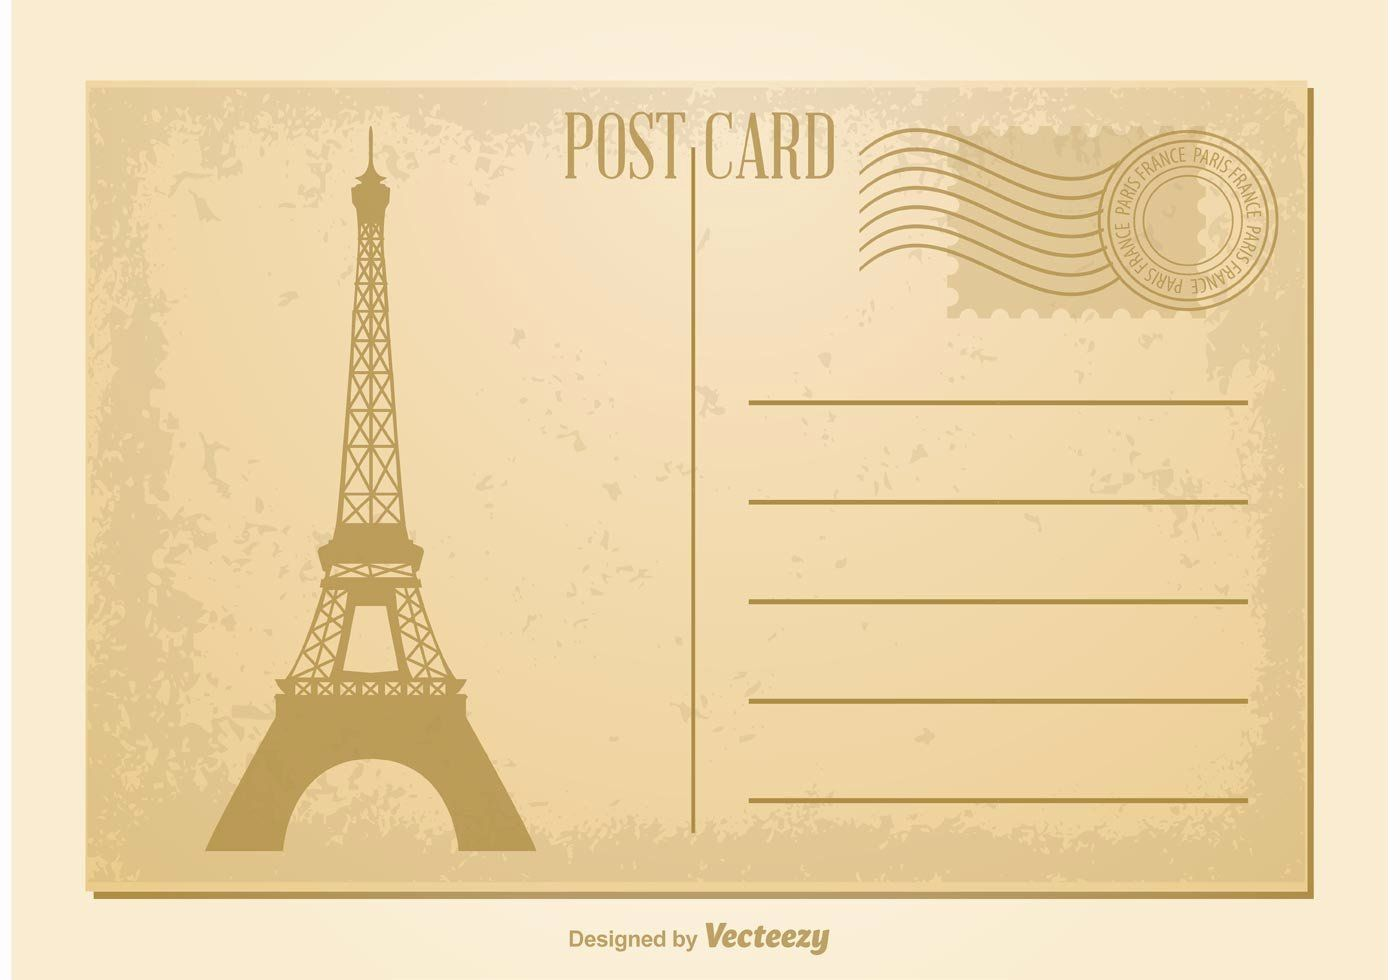 Blank Postcard Template Free Awesome Vintage Postcard Vector Download Free Vector Art Stock In 2020 Free Postcards Postcard Template Postcard Template Free